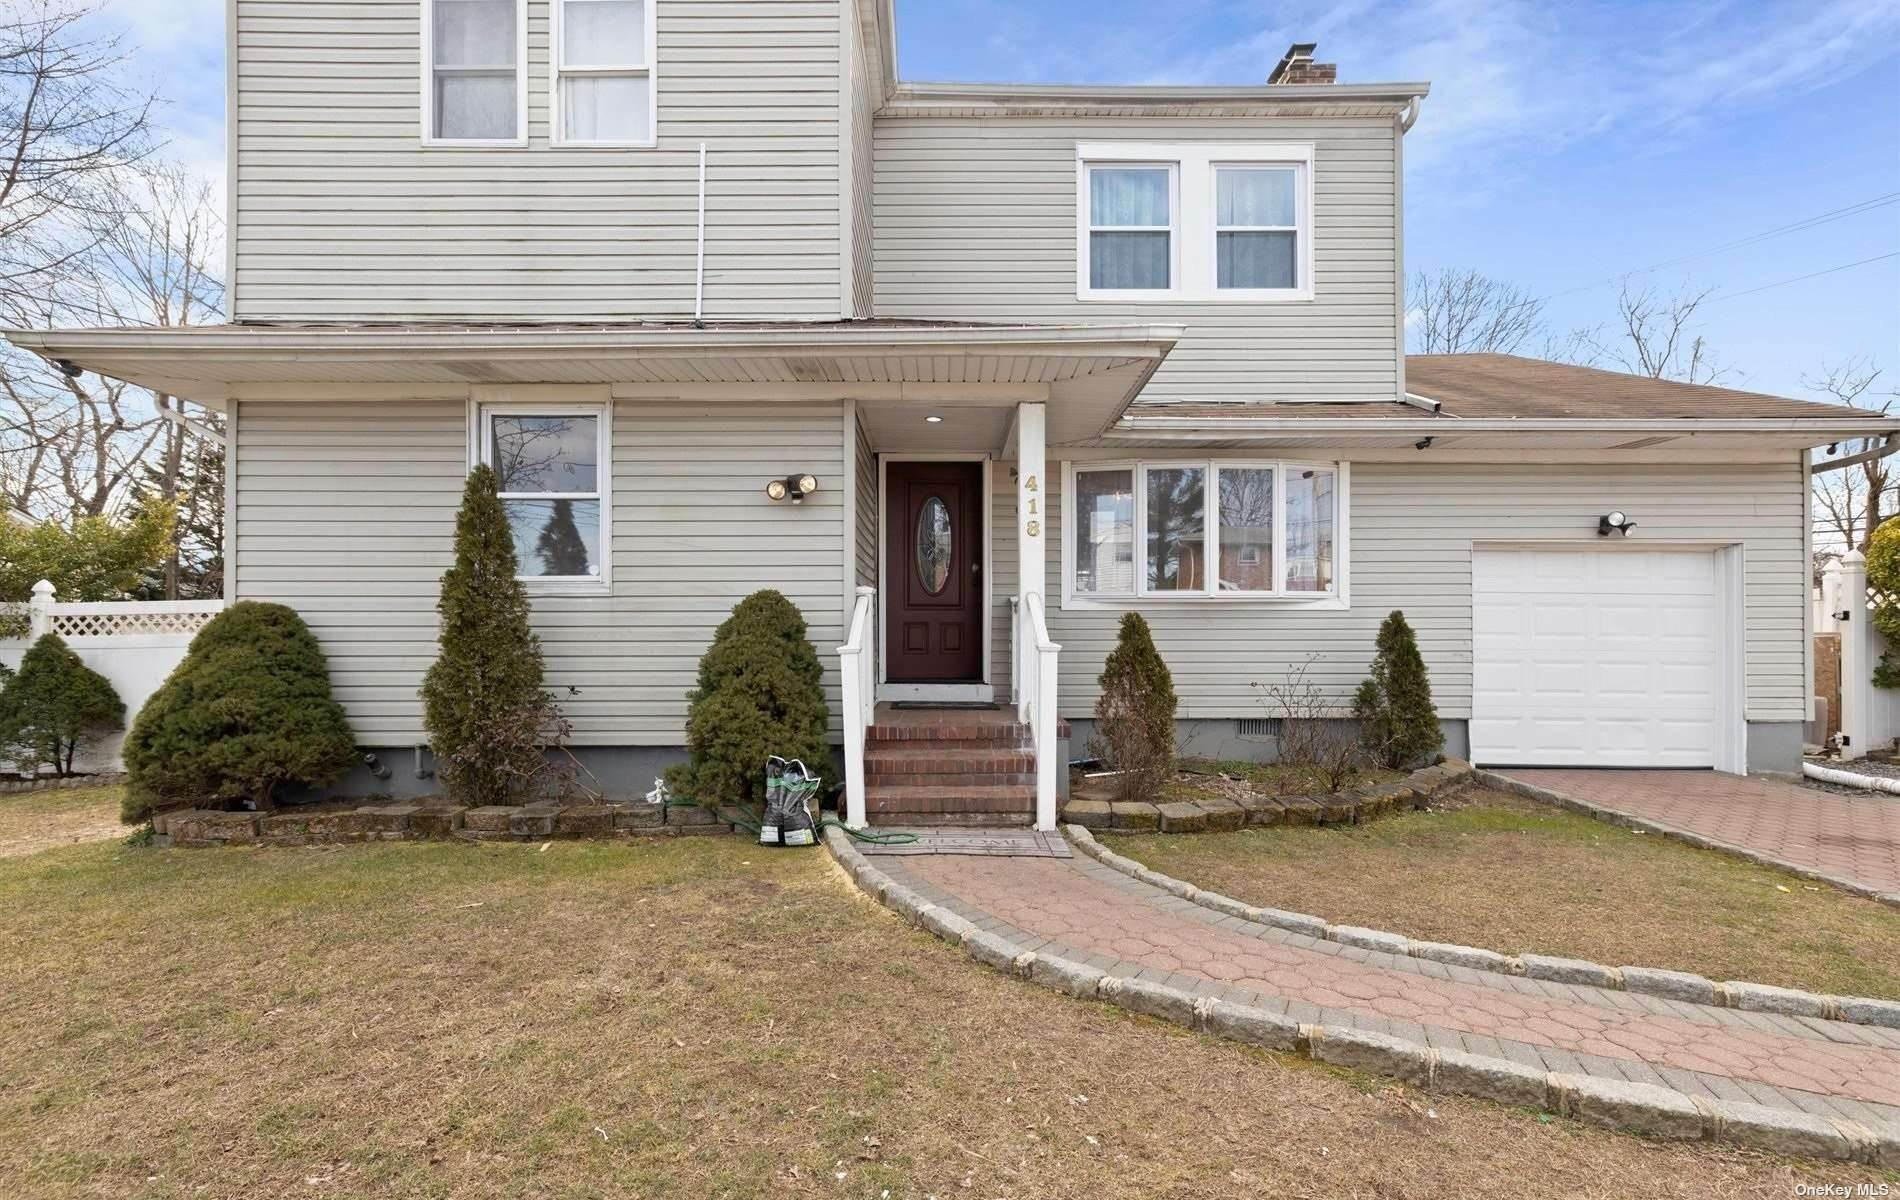 Residential for Sale at 418 Windmill Avenue, W. Babylon, NY 11704 West Babylon, New York 11704 United States